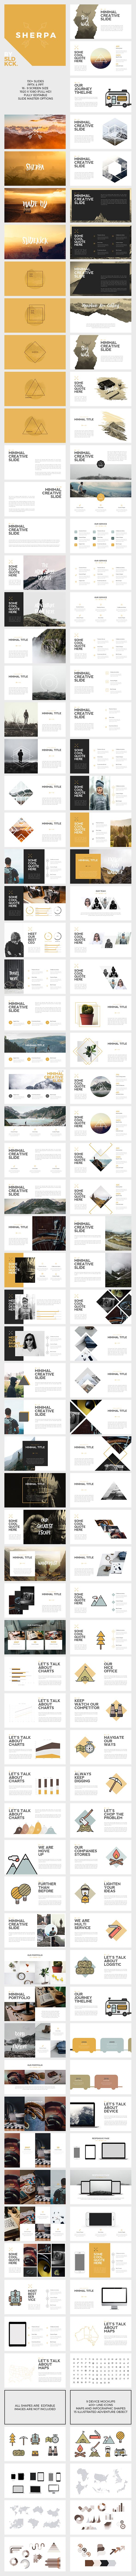 SHERPA - Hipster Keynote Presentation Template. Download here: http://graphicriver.net/item/sherpa-hipster-keynote-presentation/16389183?ref=ksioks